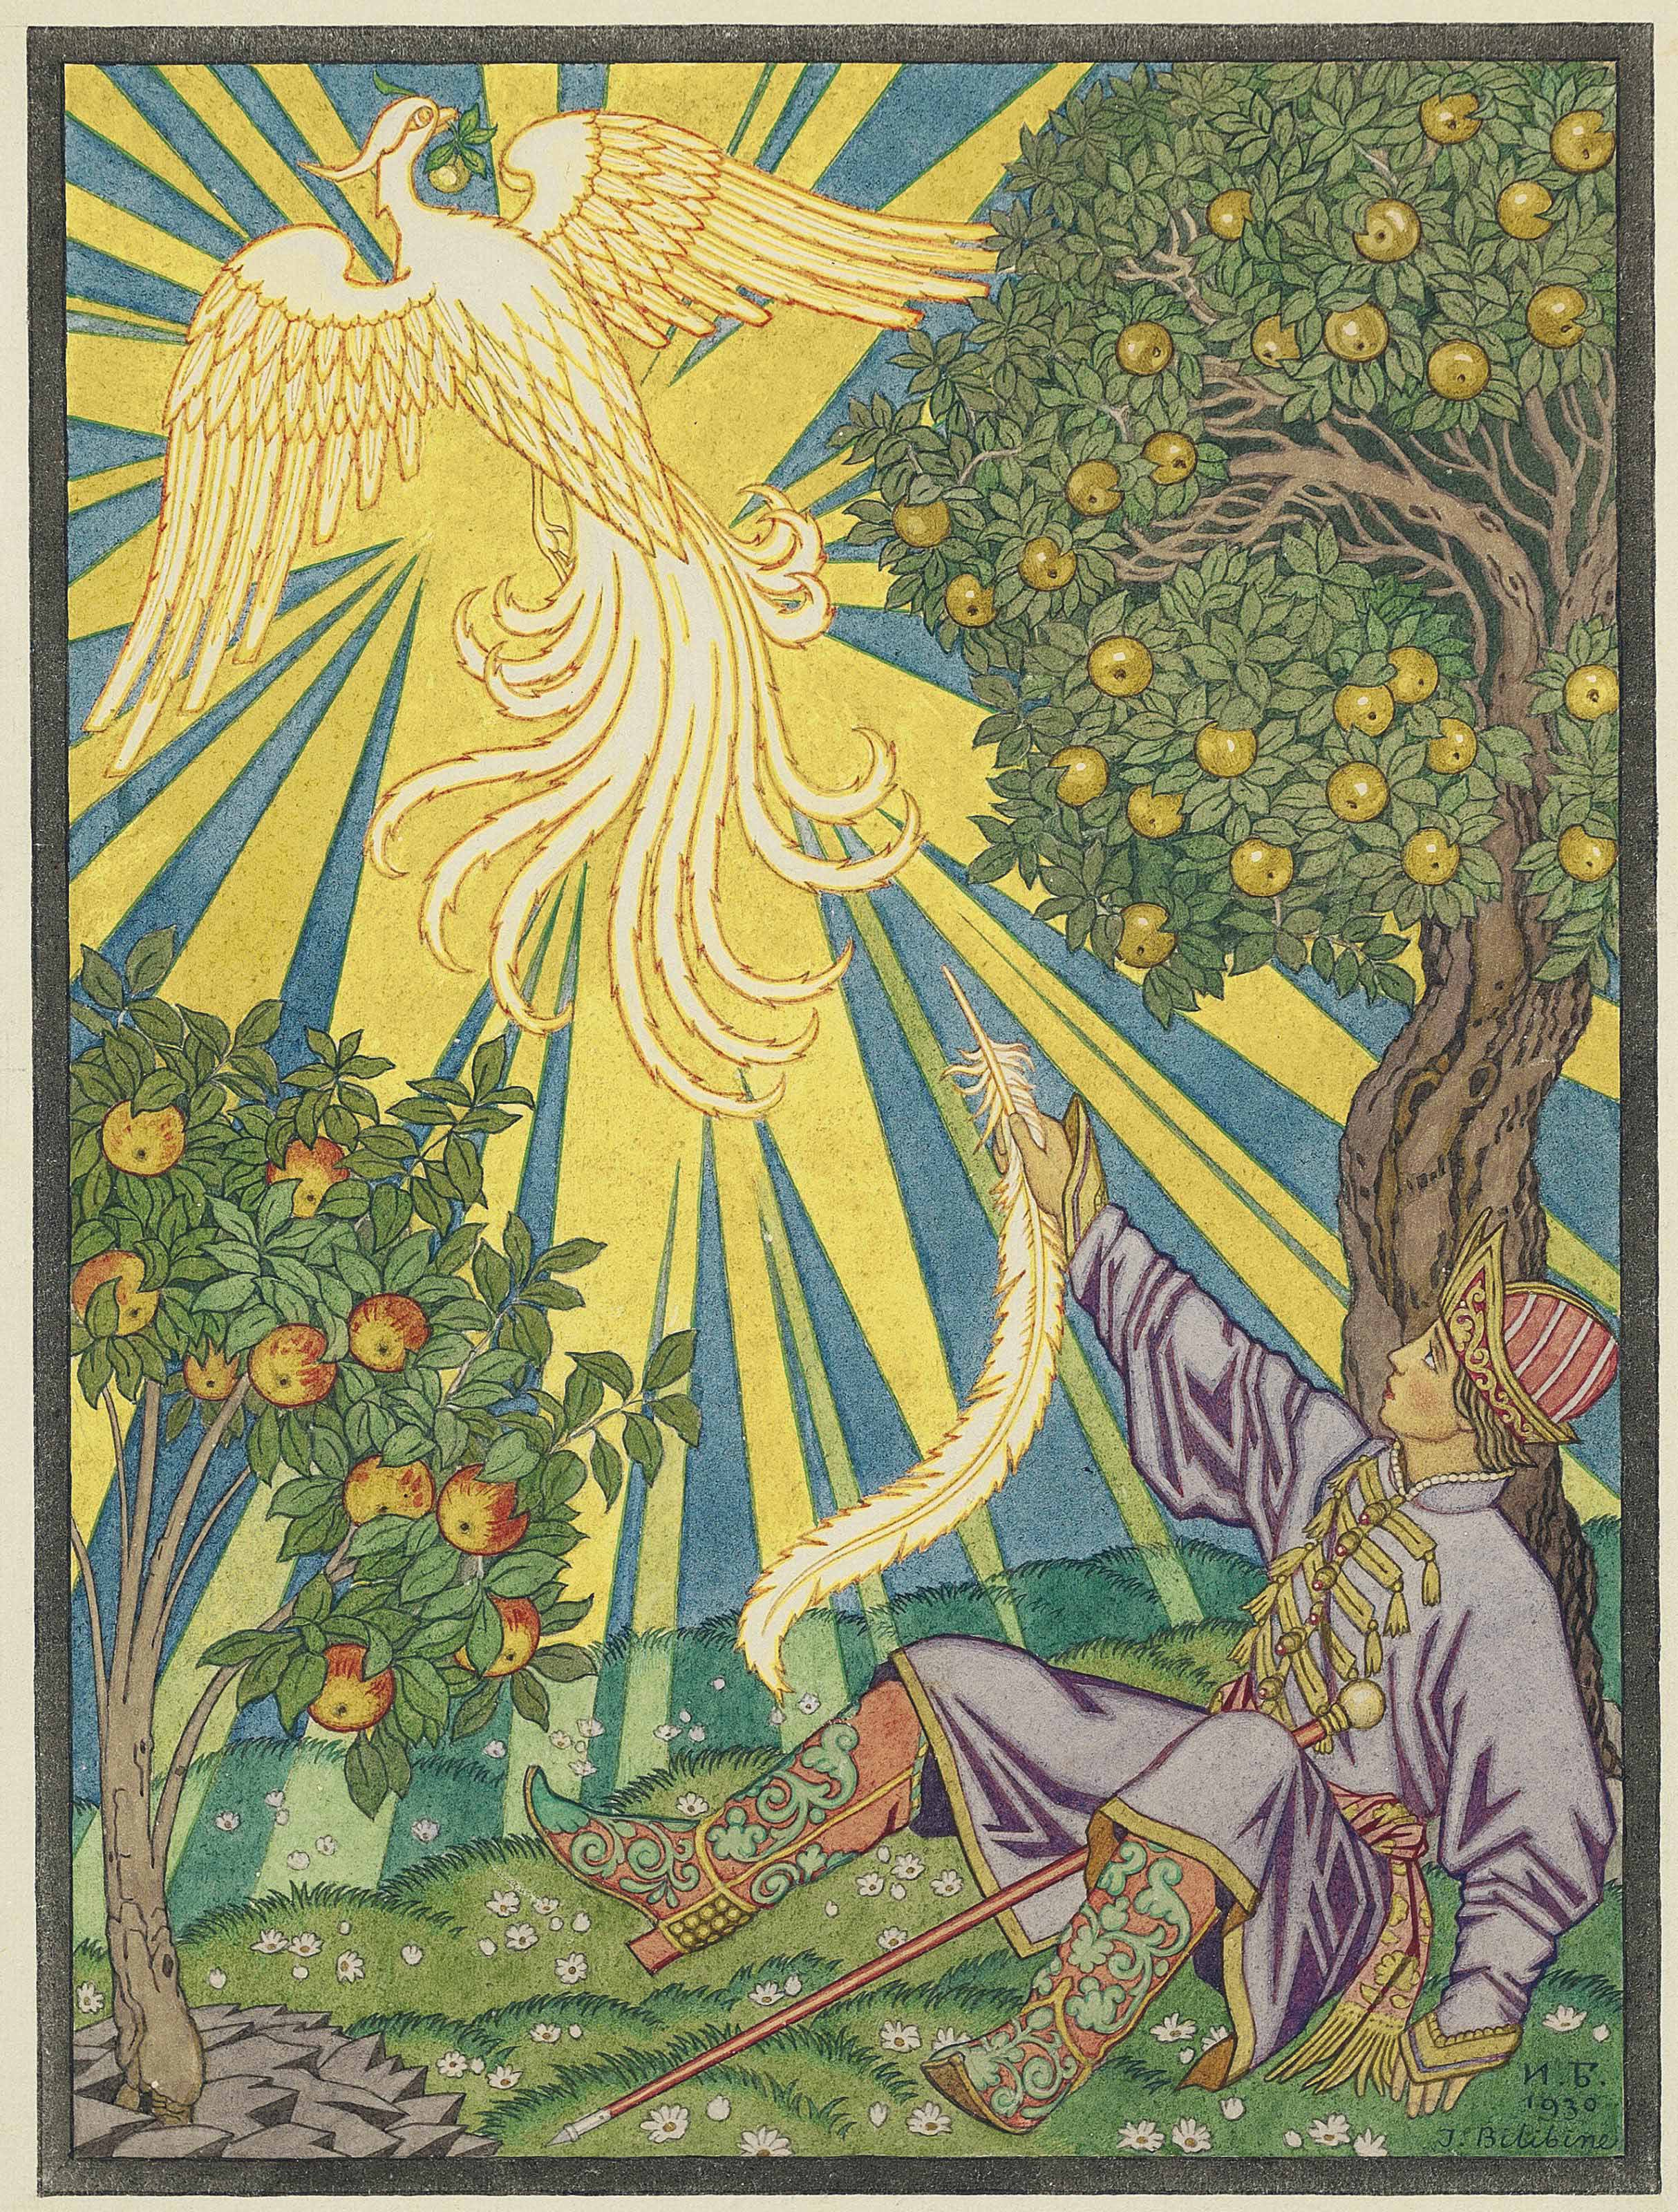 Illustration for Contes de l'isba: Ivan-Tsarevich and the Firebird